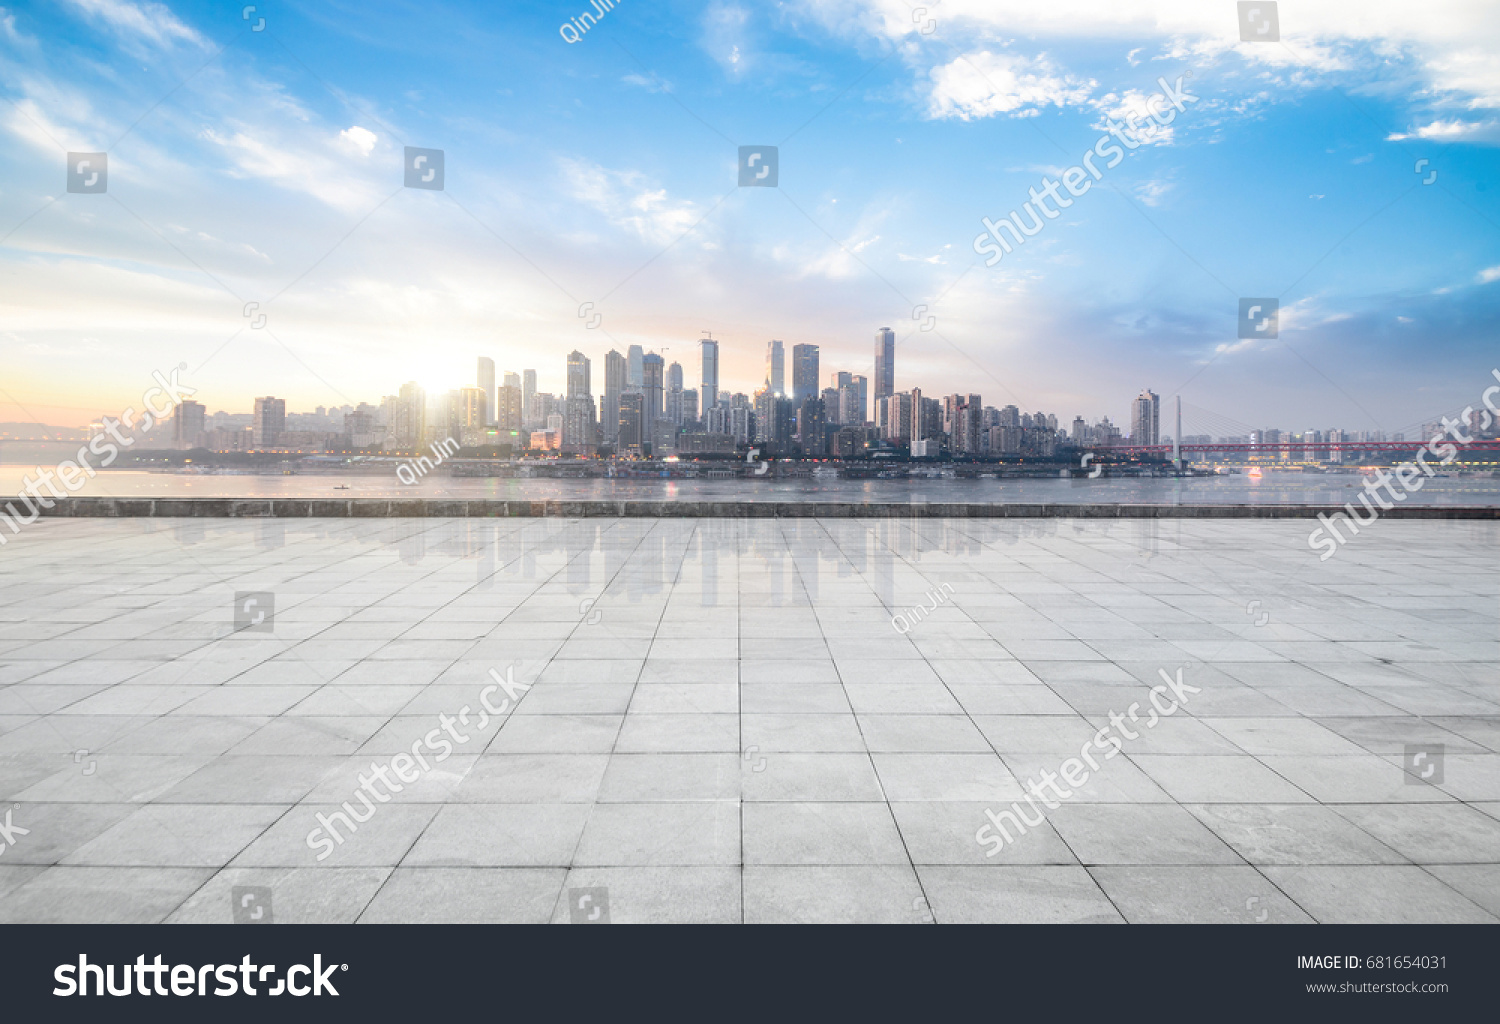 Panoramic skyline and buildings with empty concrete square floor #681654031